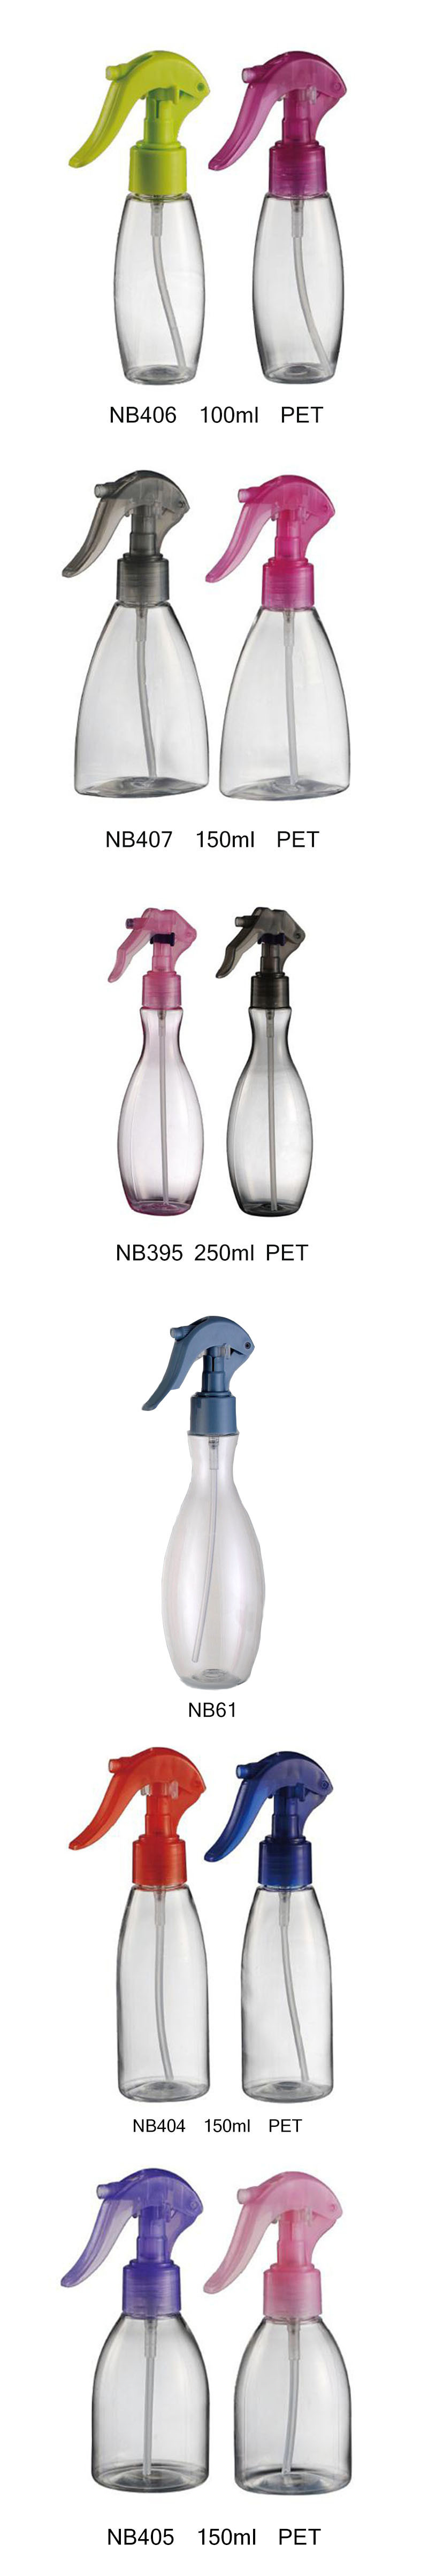 Plastic Trigger Sprayer Bottle for Cosmetics (NB404)